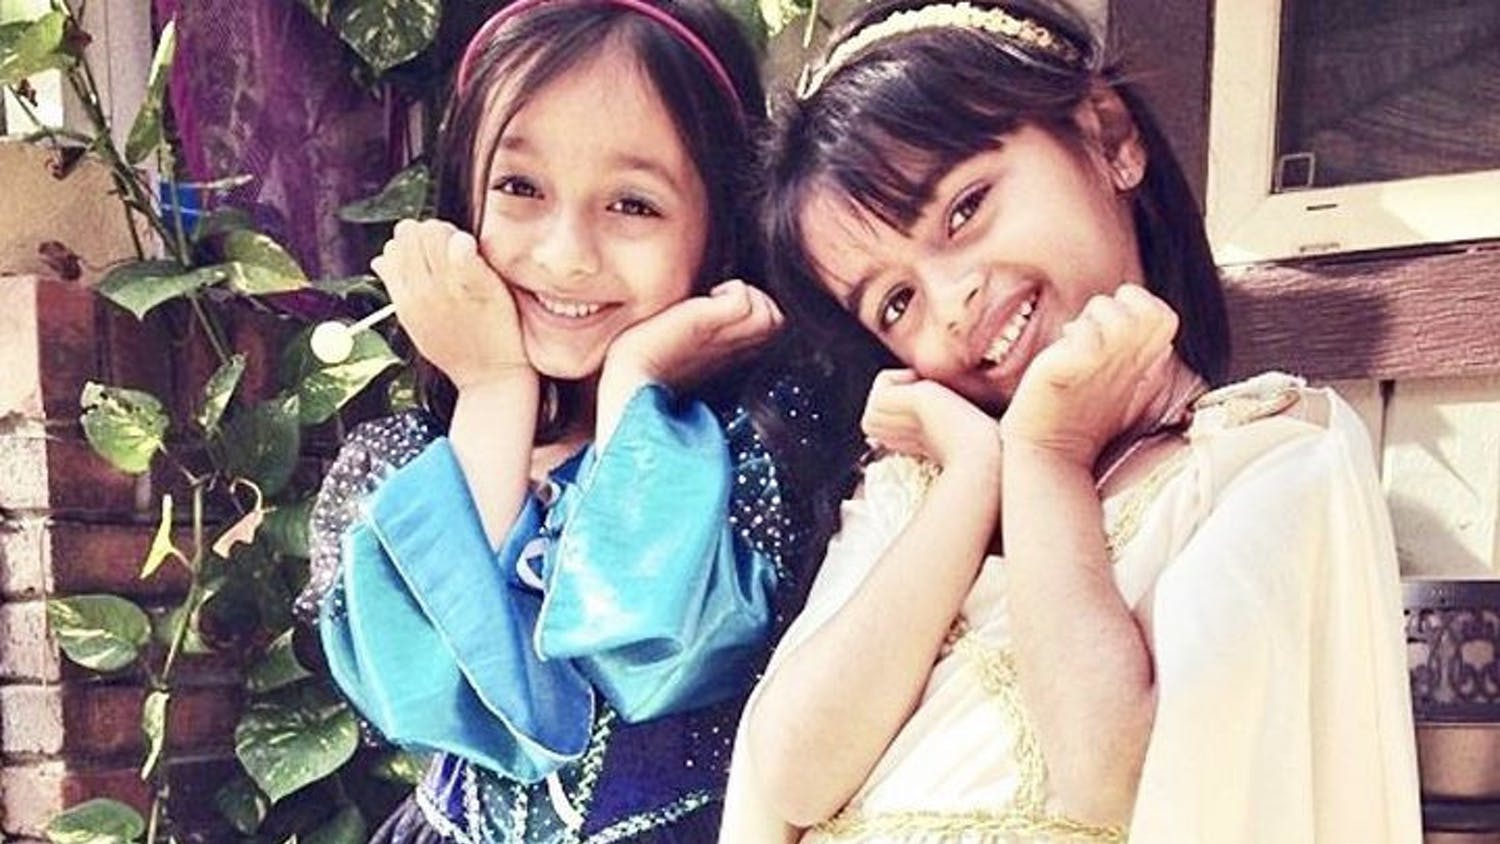 Laiba Nasir and Romaisa Zoaib, whohave been best friends since before they were 1, founded Sweet Tooth Charity in late June.